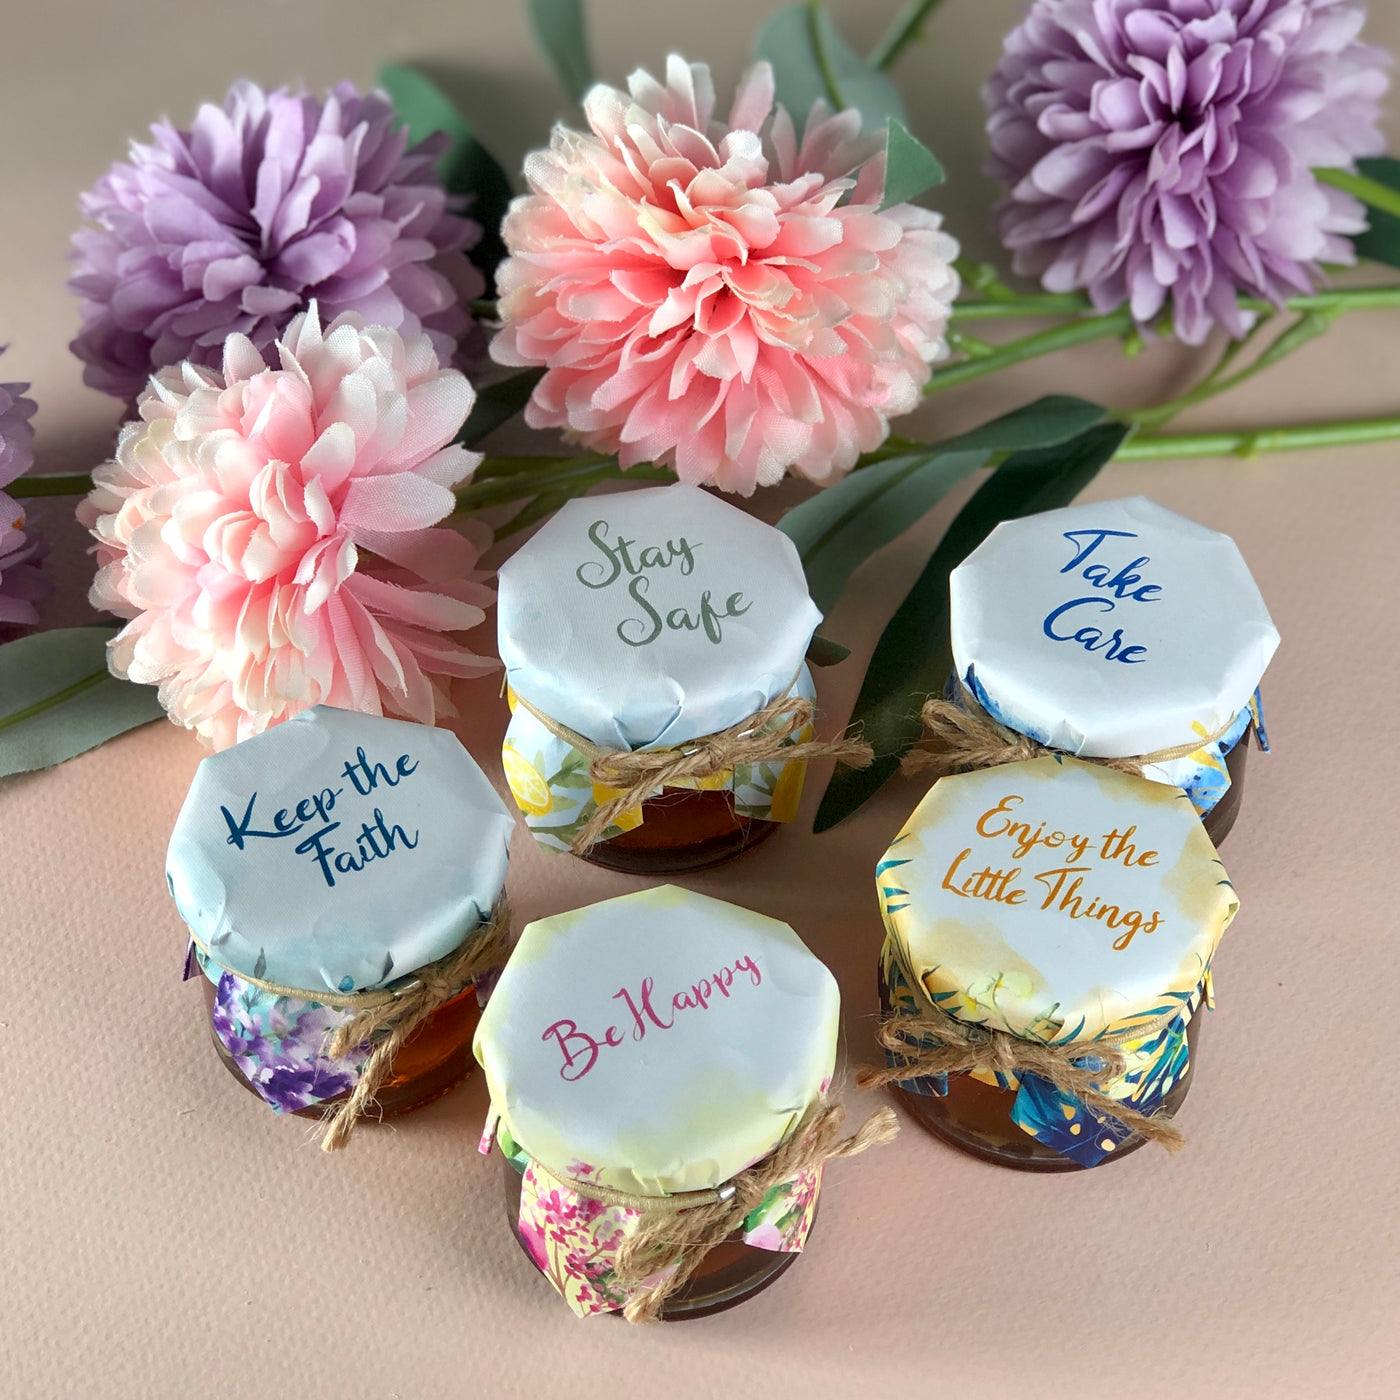 Personalised & Unique Honey Favours for All Occasions!